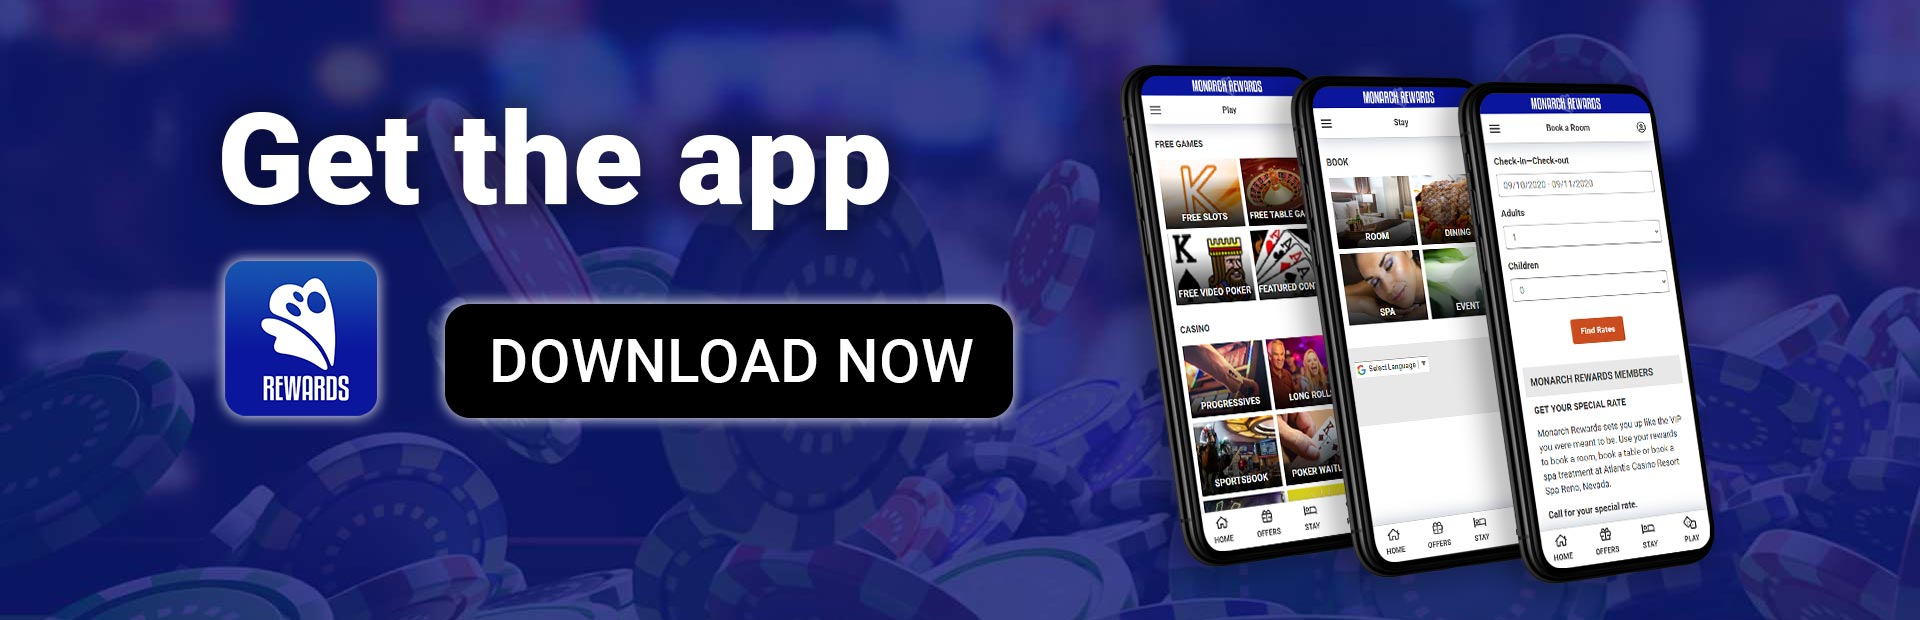 Get the monarch rewards app - download now